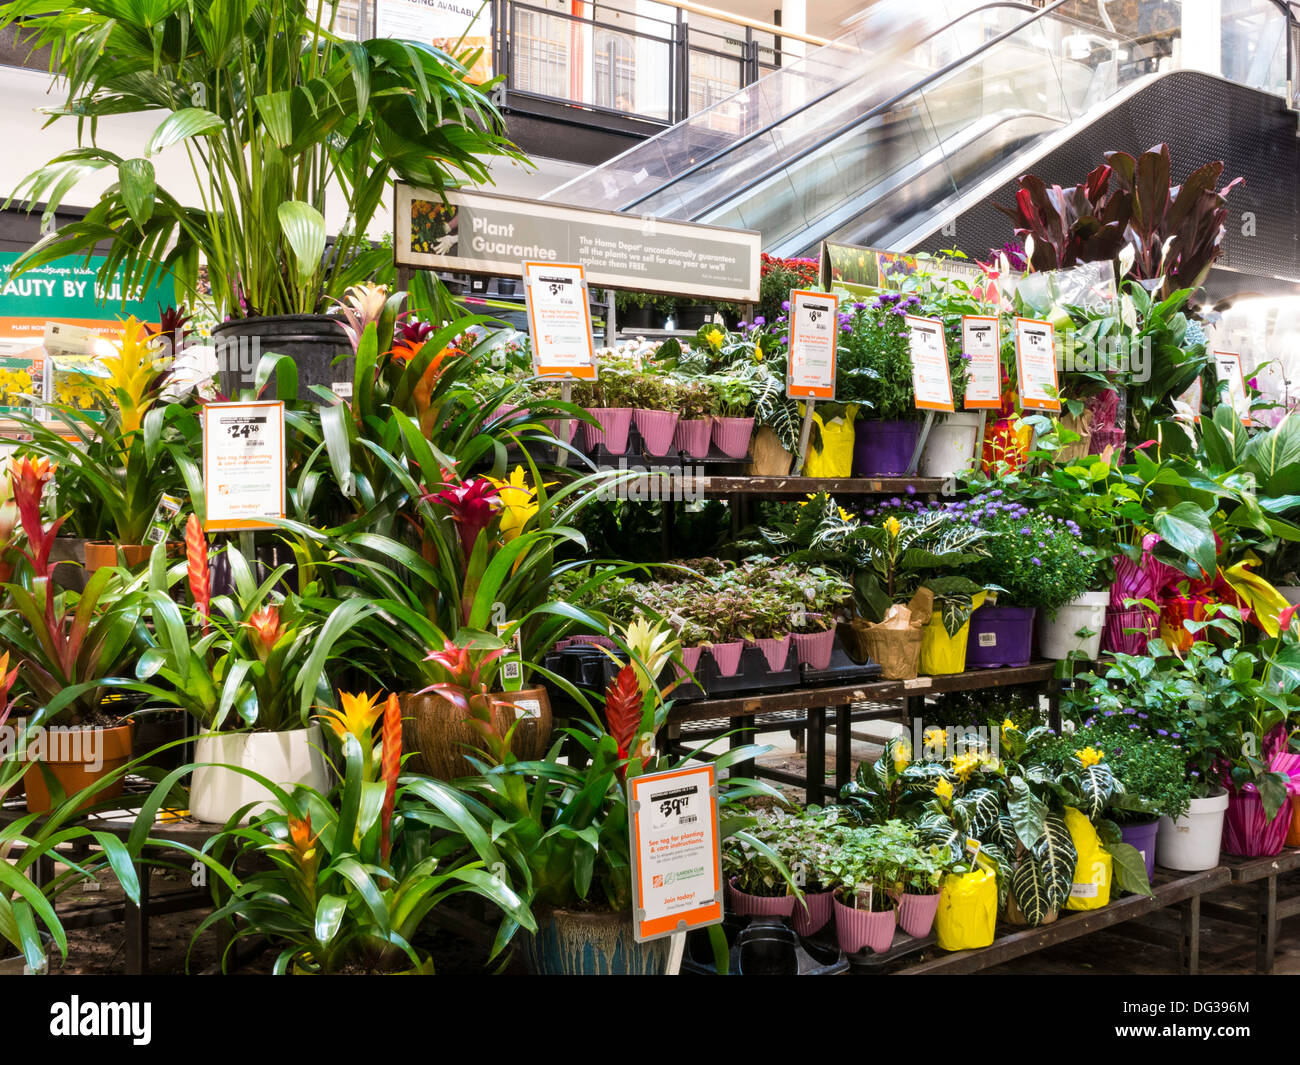 home depot store garden center display nyc stock photo 61538700 alamy